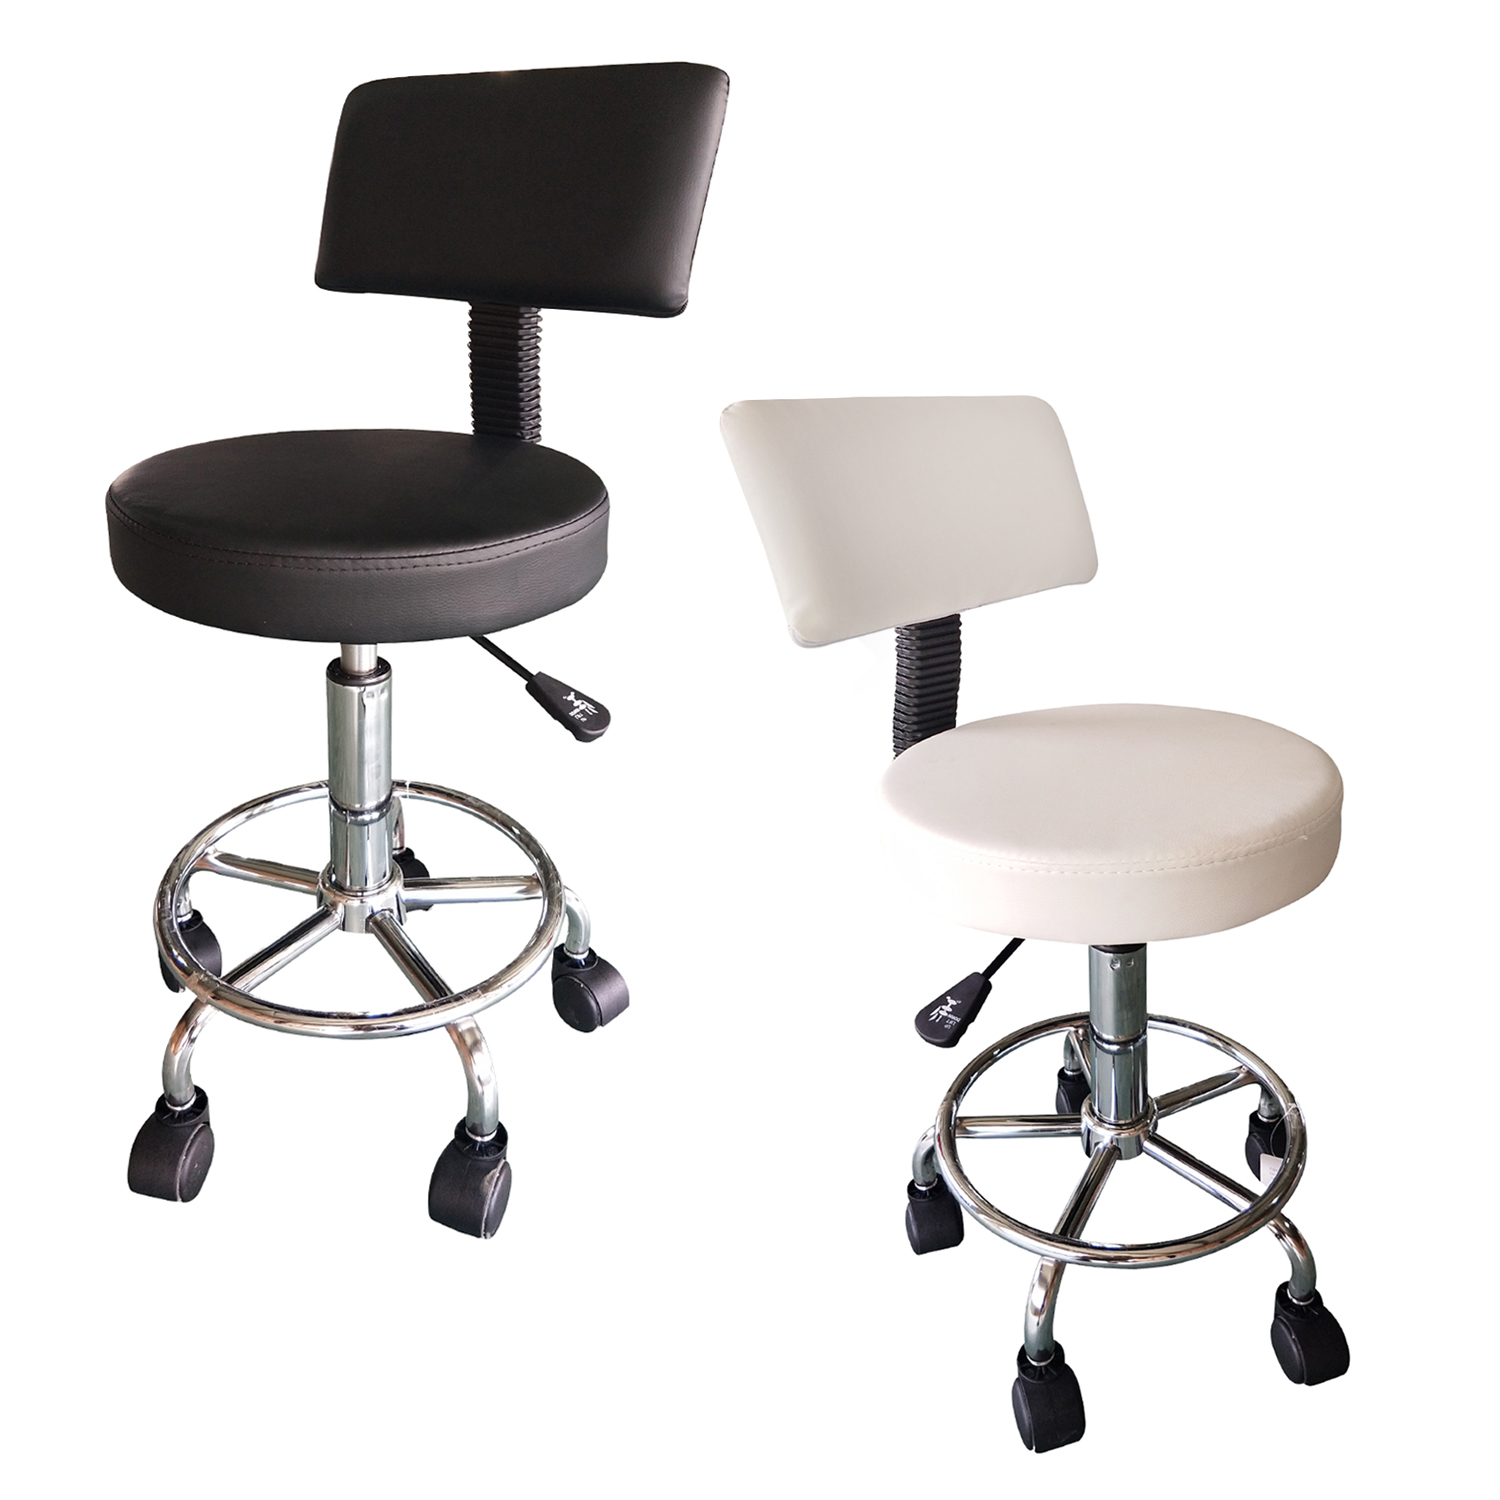 Massage Therapist Chair Details About Massage Chair Therapy Stool Therapy Salon Spa Beauty Hairdresser Manicure Tattoo